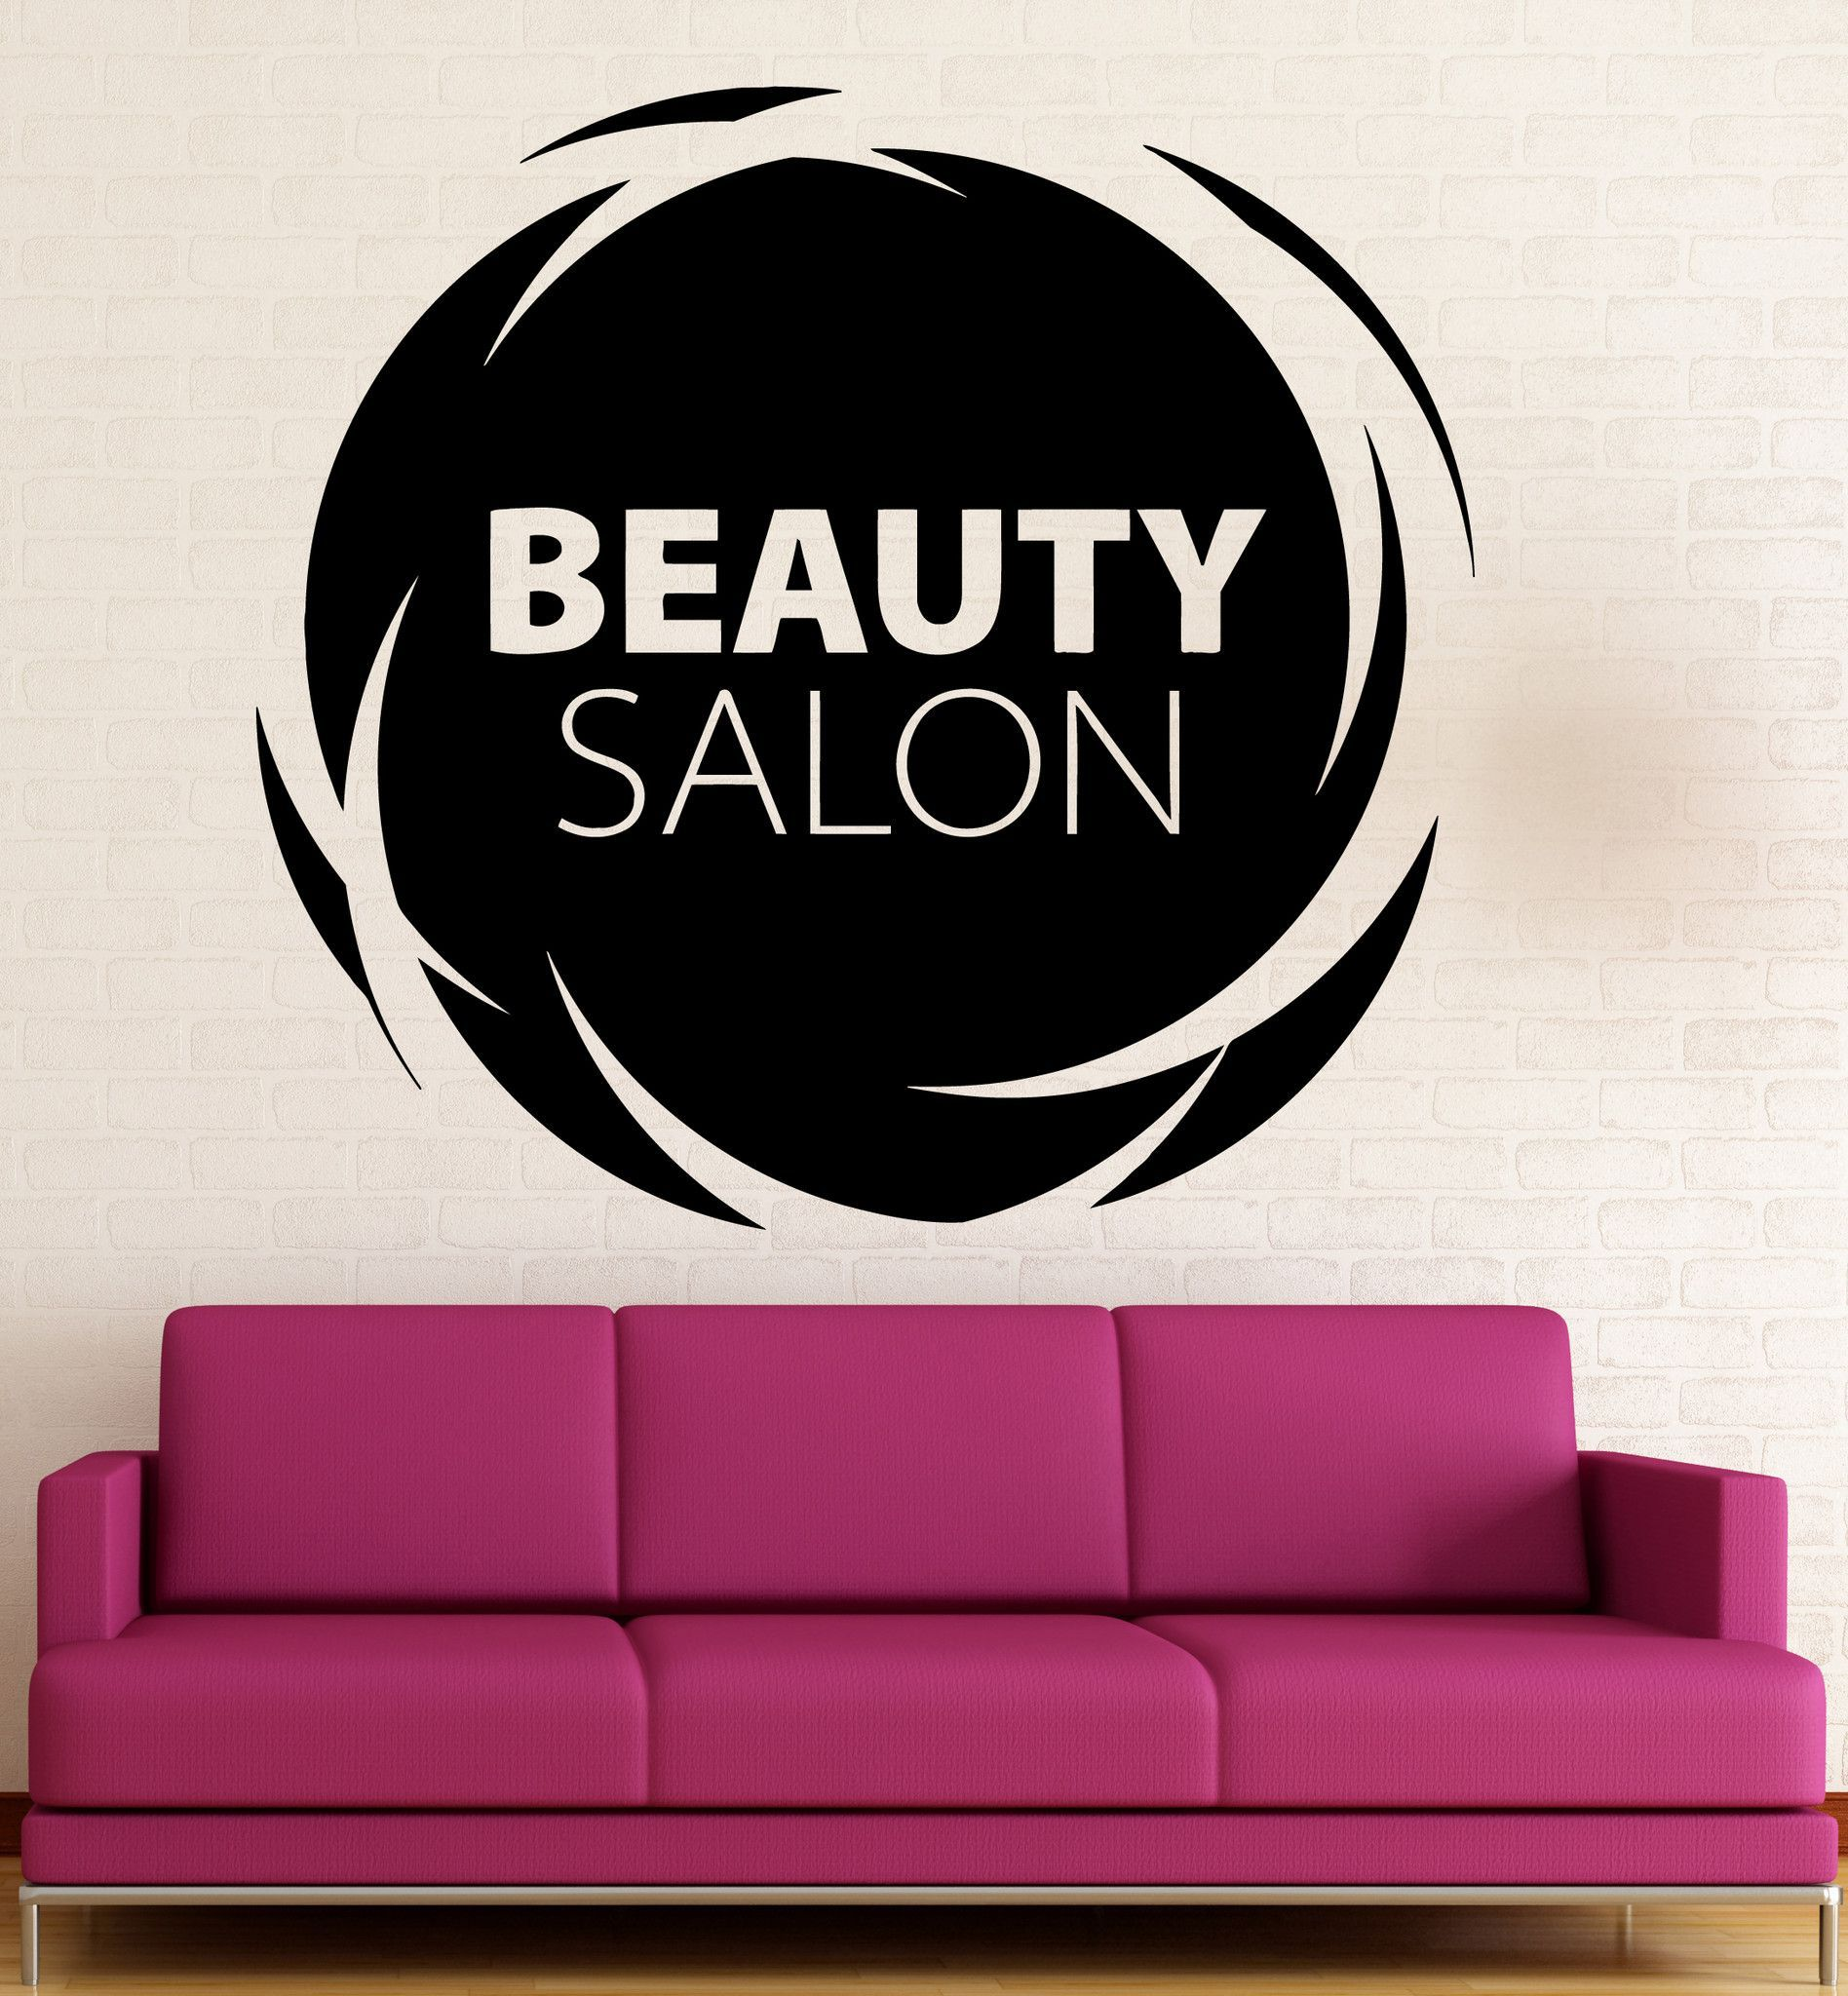 vinyl decal beauty salon quote wall sticker hair spa woman salon vinyl decal beauty salon quote wall sticker hair spa woman salon logo barbershop ig2453